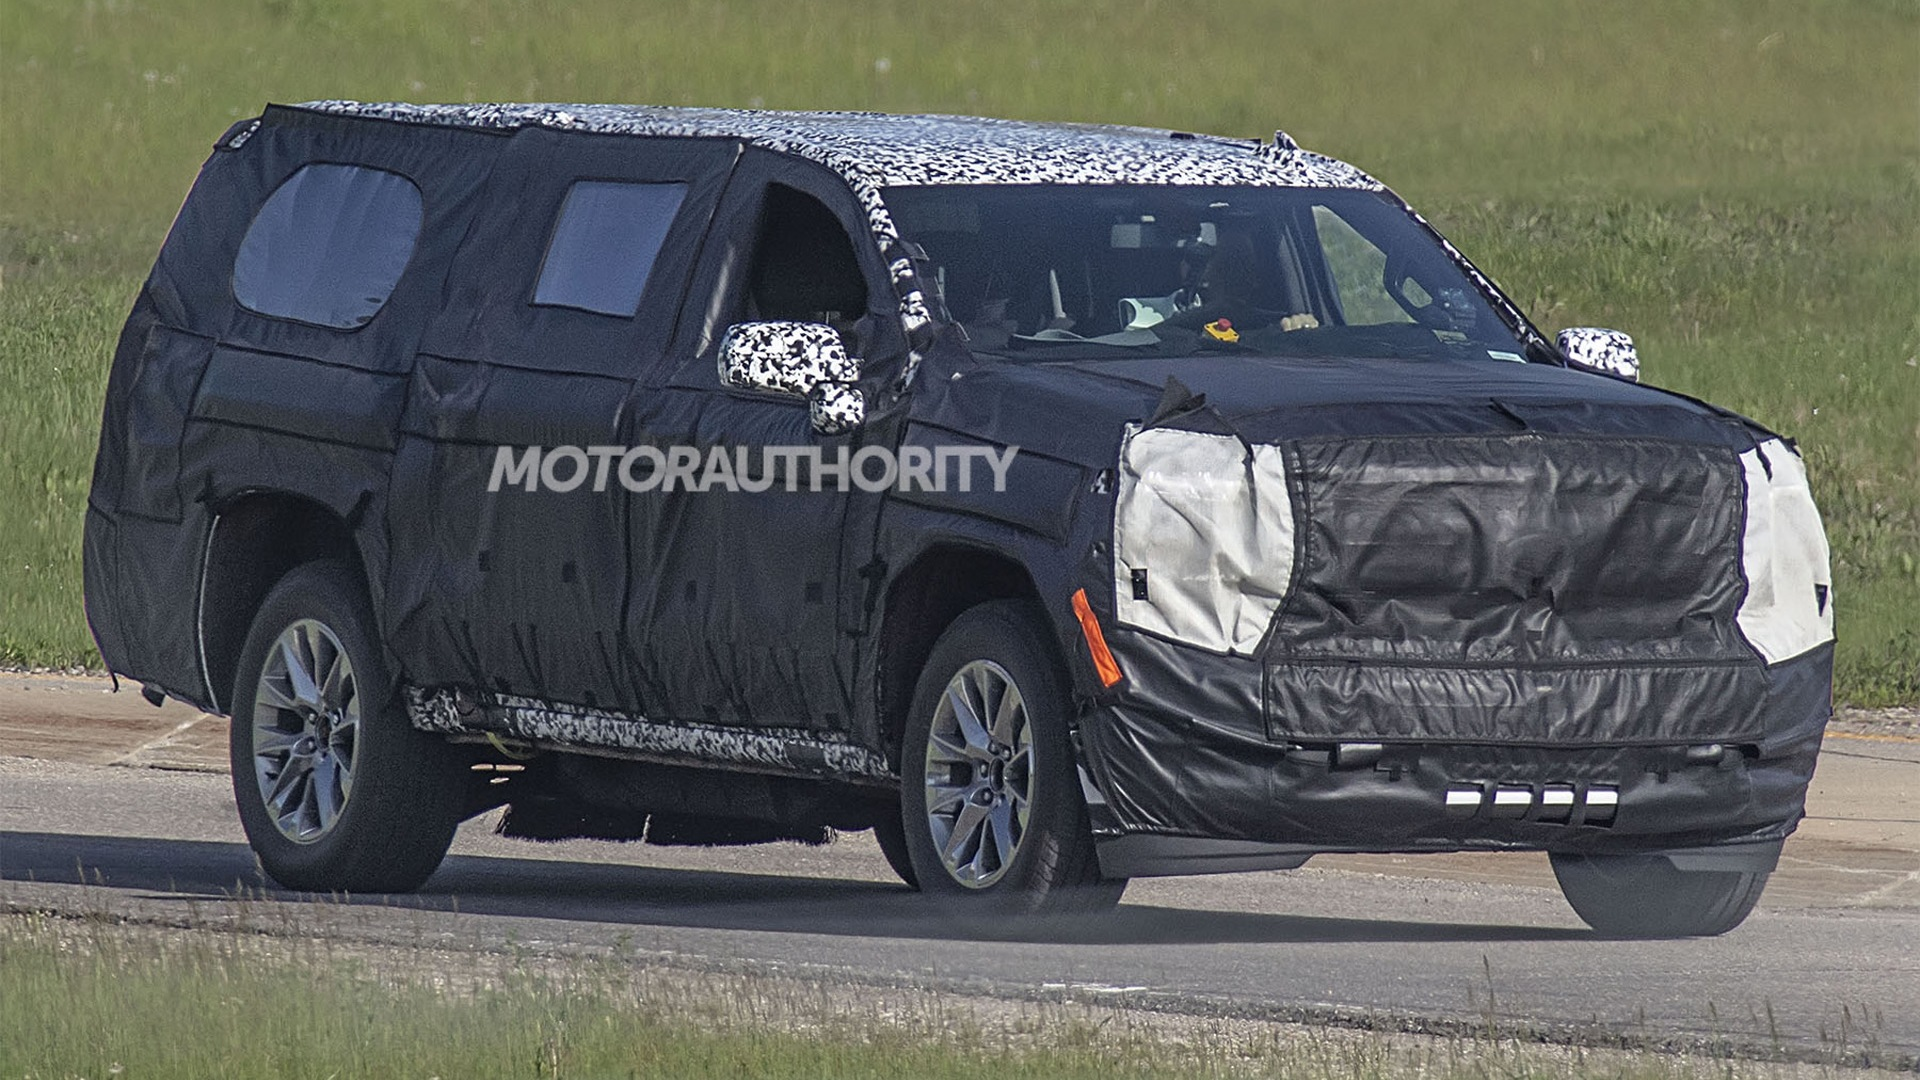 32 Great When Will The 2020 Chevrolet Suburban Be Released Model for When Will The 2020 Chevrolet Suburban Be Released